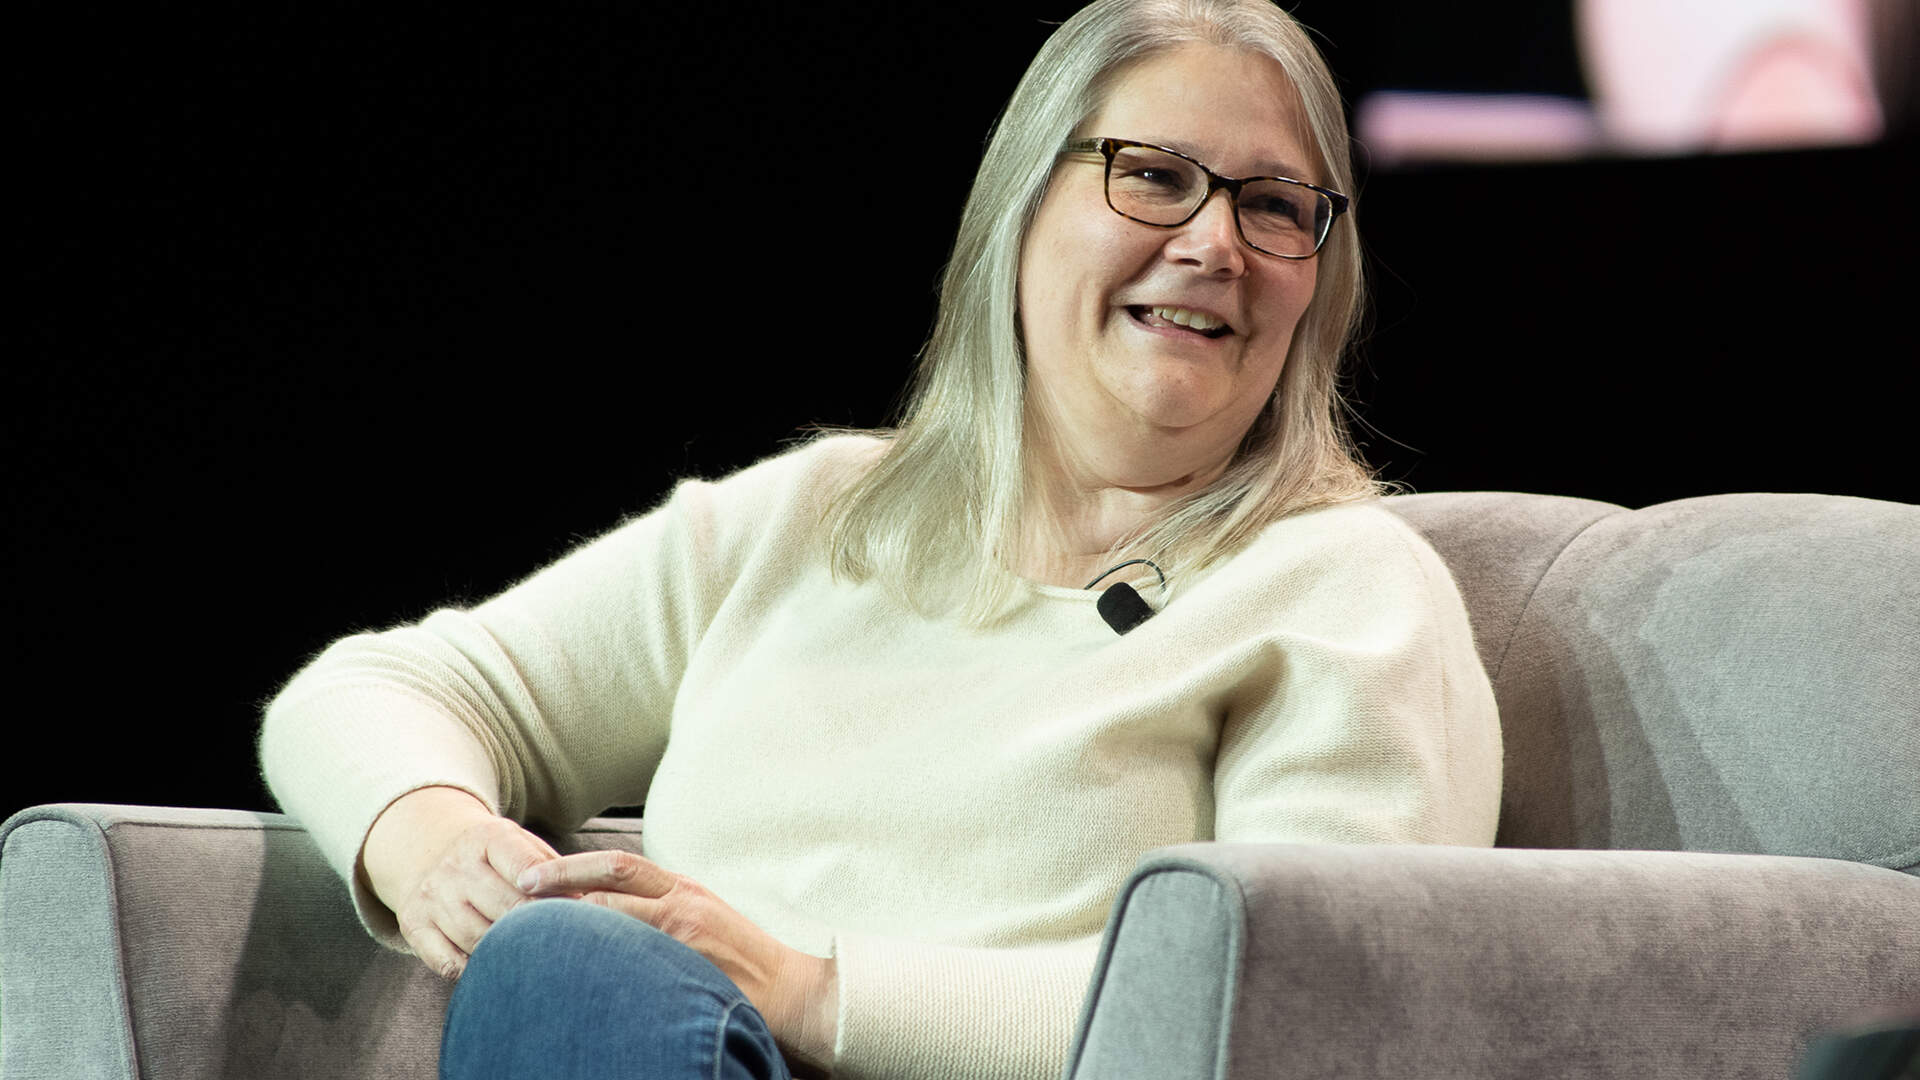 Amy Hennig is Forming a New Team at the Hollywood Production Company Skydance